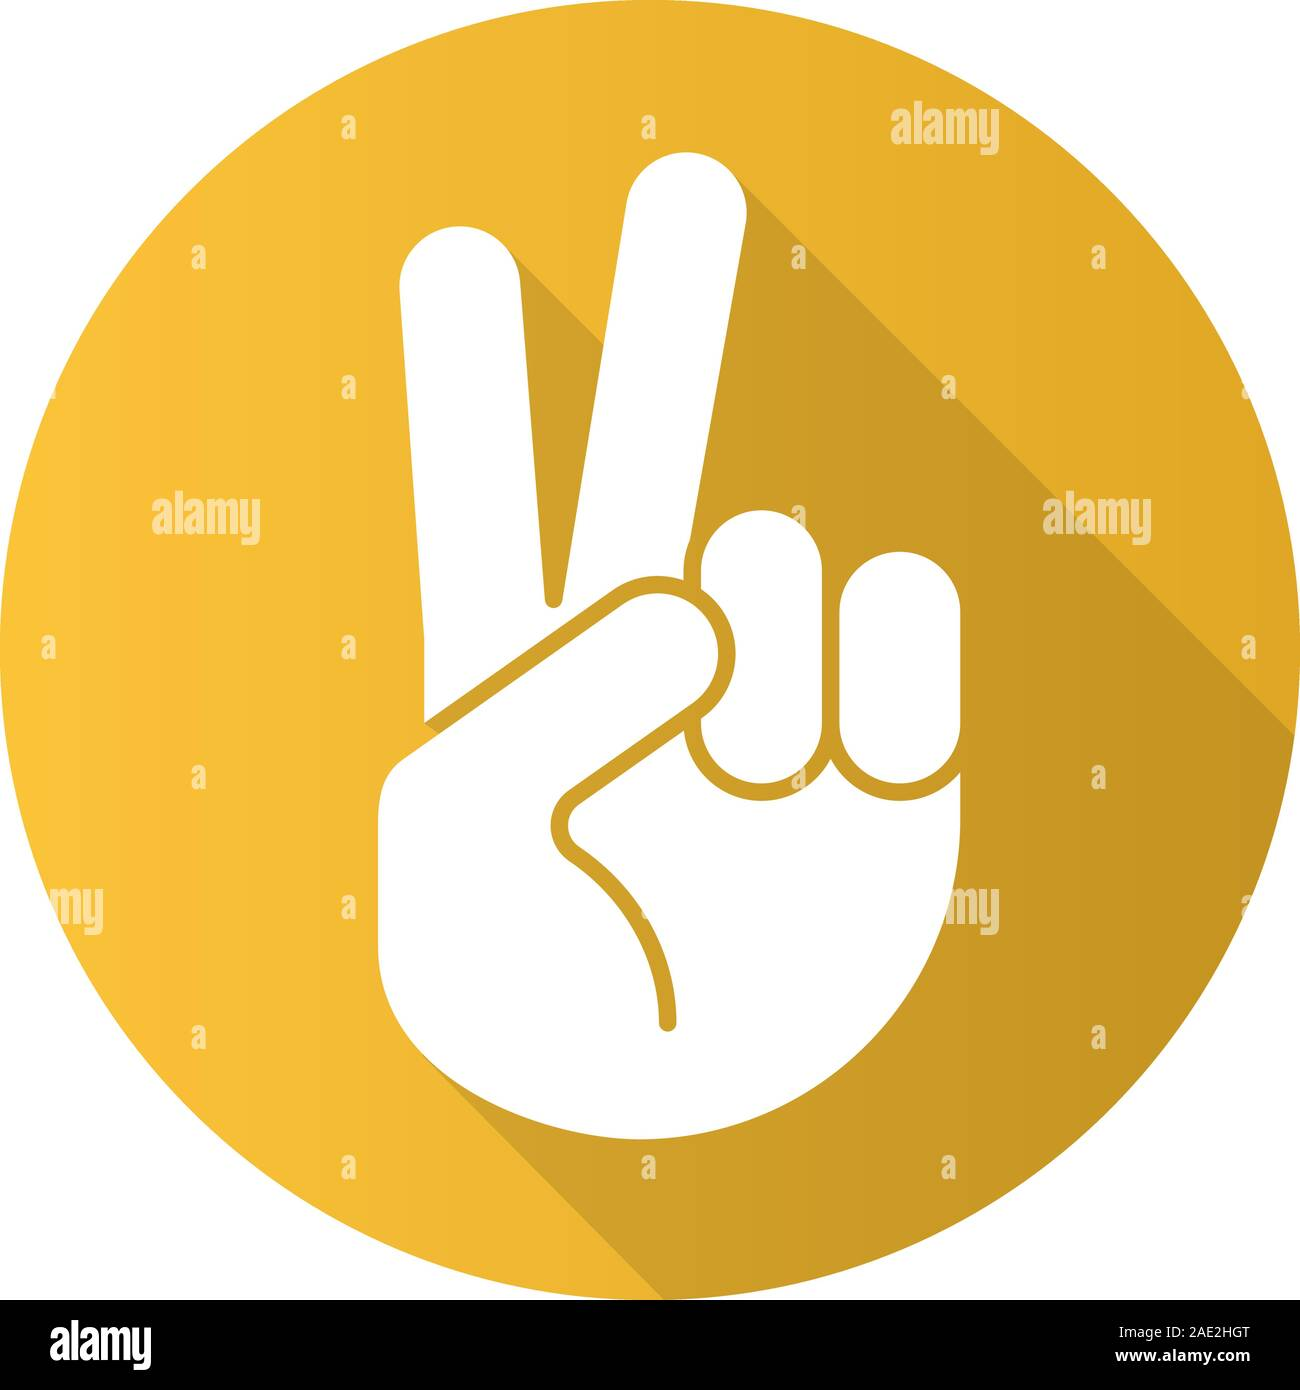 peace hand gesture flat design long shadow icon two fingers up vector silhouette symbol stock vector image art alamy https www alamy com peace hand gesture flat design long shadow icon two fingers up vector silhouette symbol image335659880 html